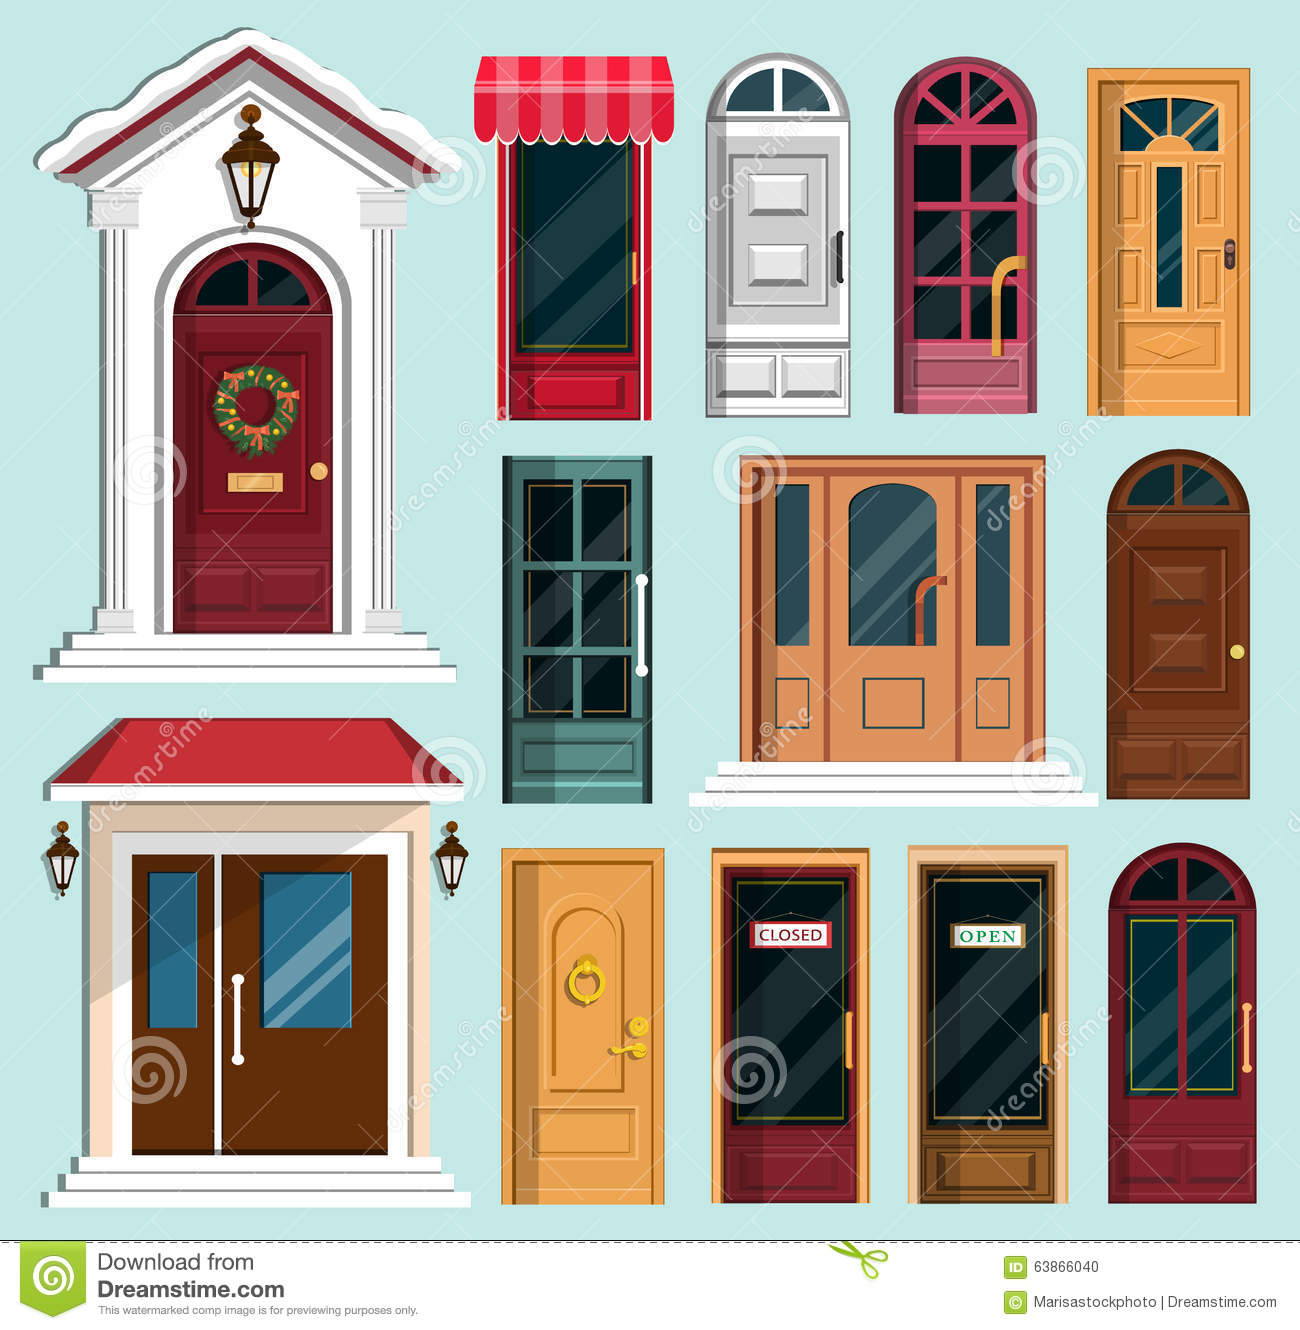 1330 #AA212D Set Of Detailed Colorful Front Doors To Private Houses And Buildings pic Colorful Front Doors 47111300